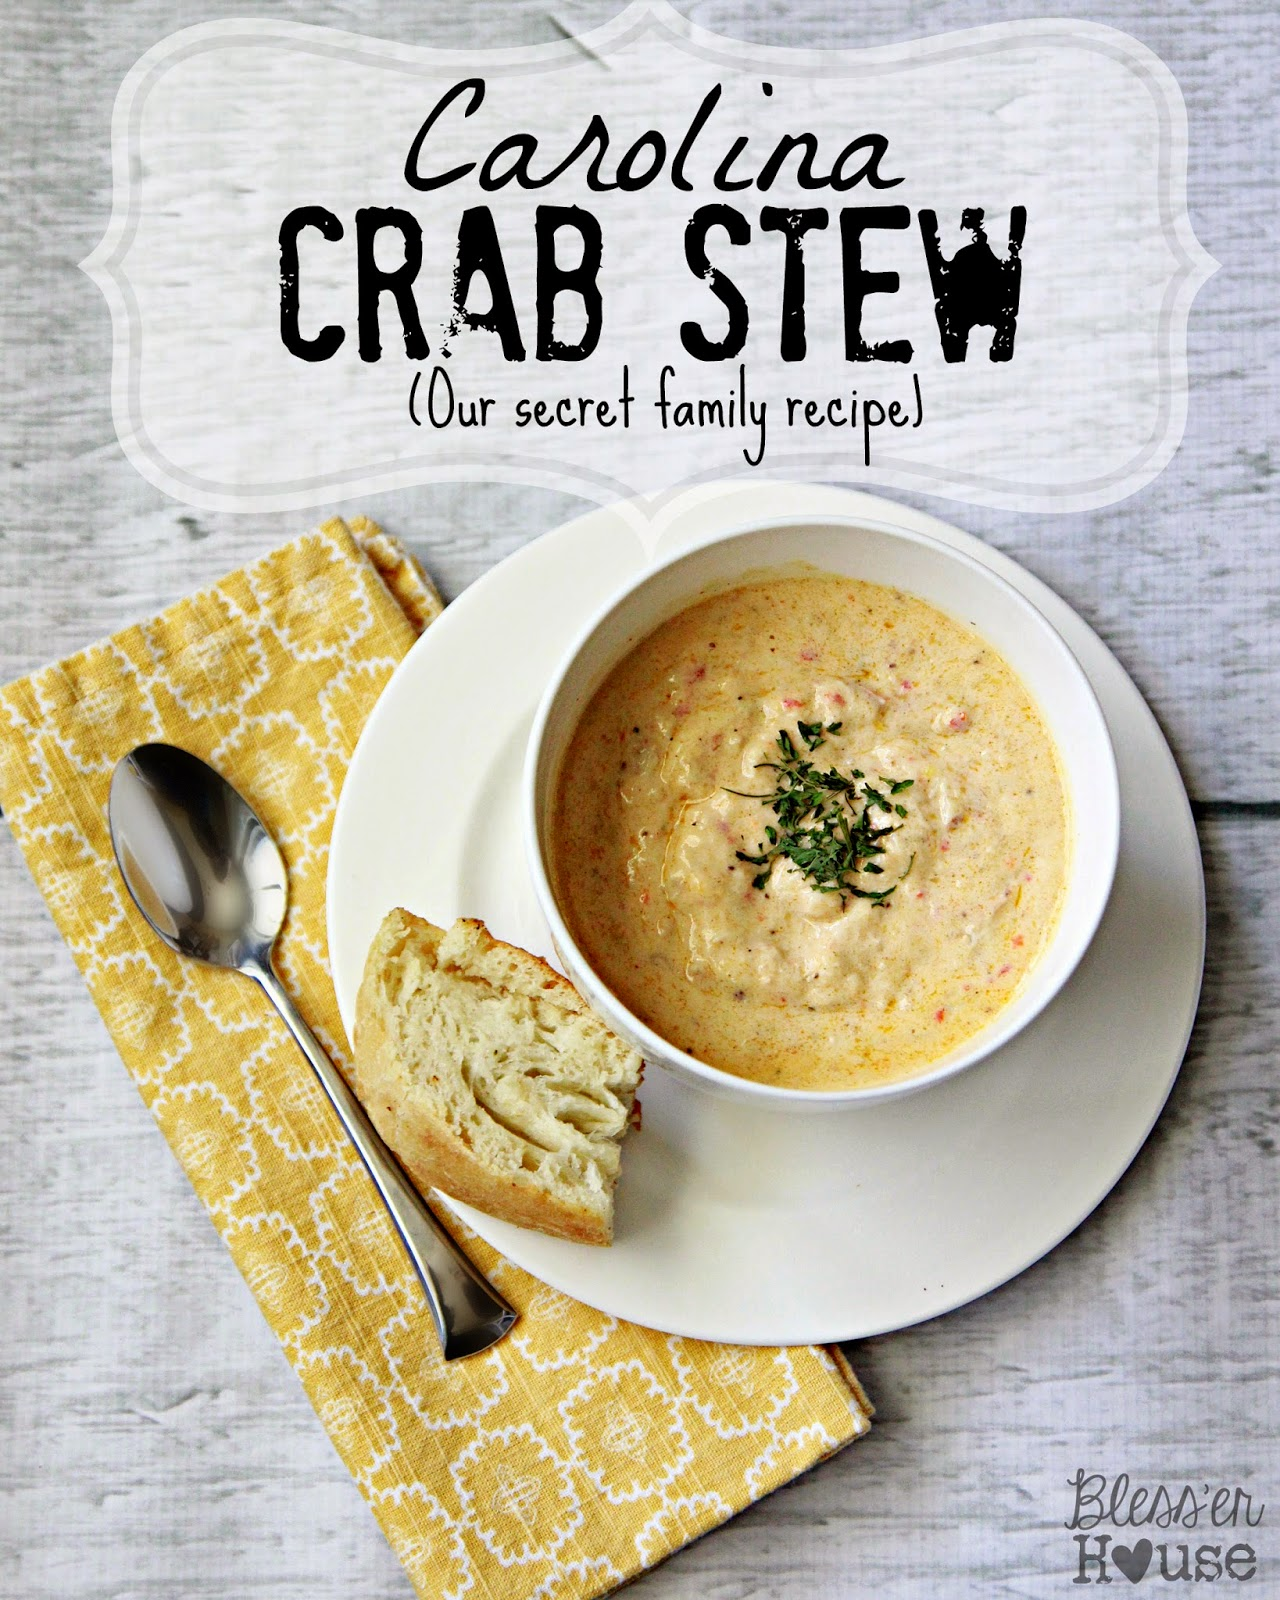 Bless'er House | Carolina Crab Stew